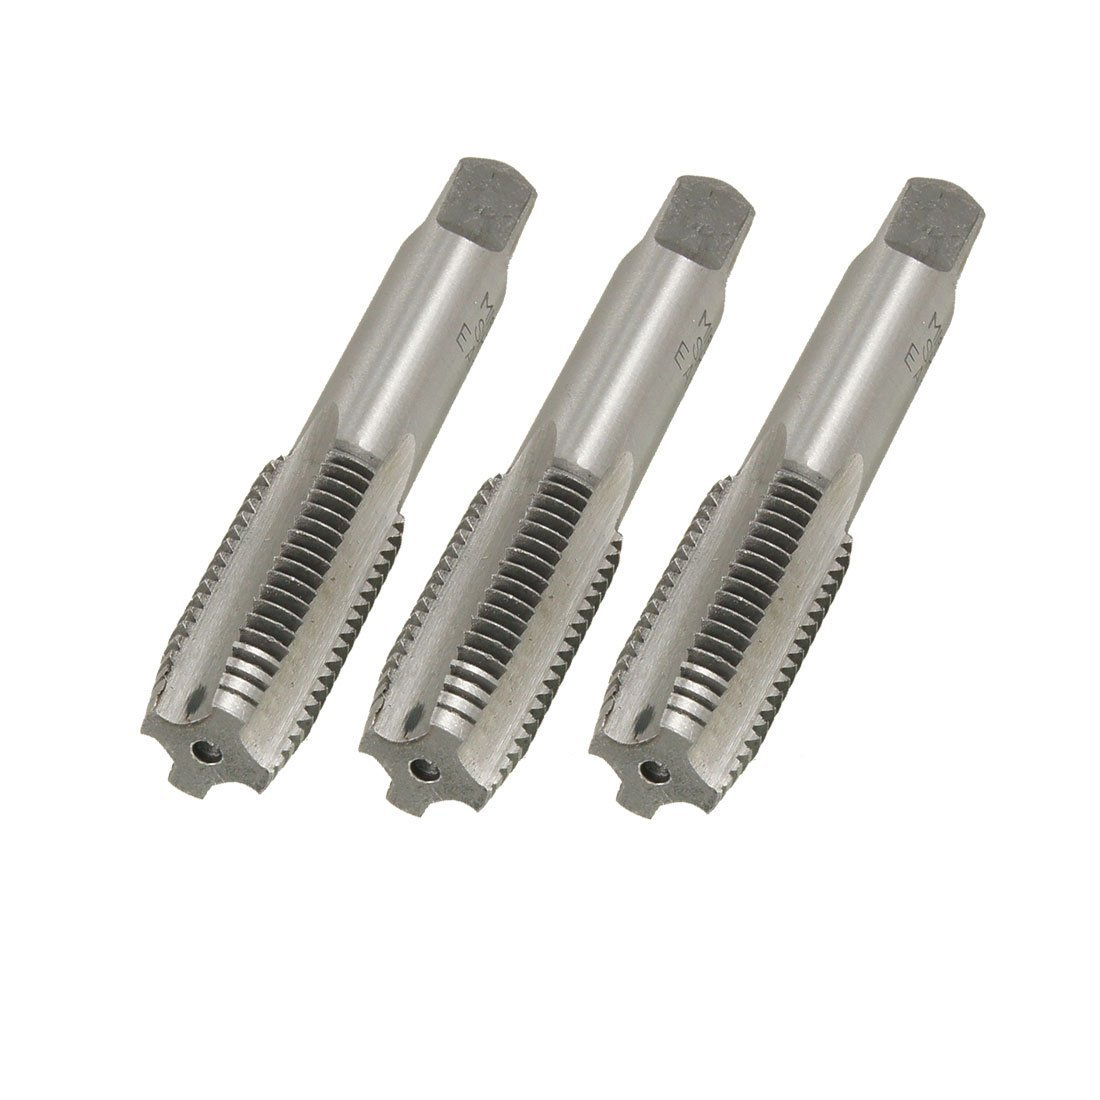 3 Pcs 16mm x 2.0mm Taper and Plug Metric Tap M16 x 2.0mm Pitch Sourcingmap a12091200ux0888